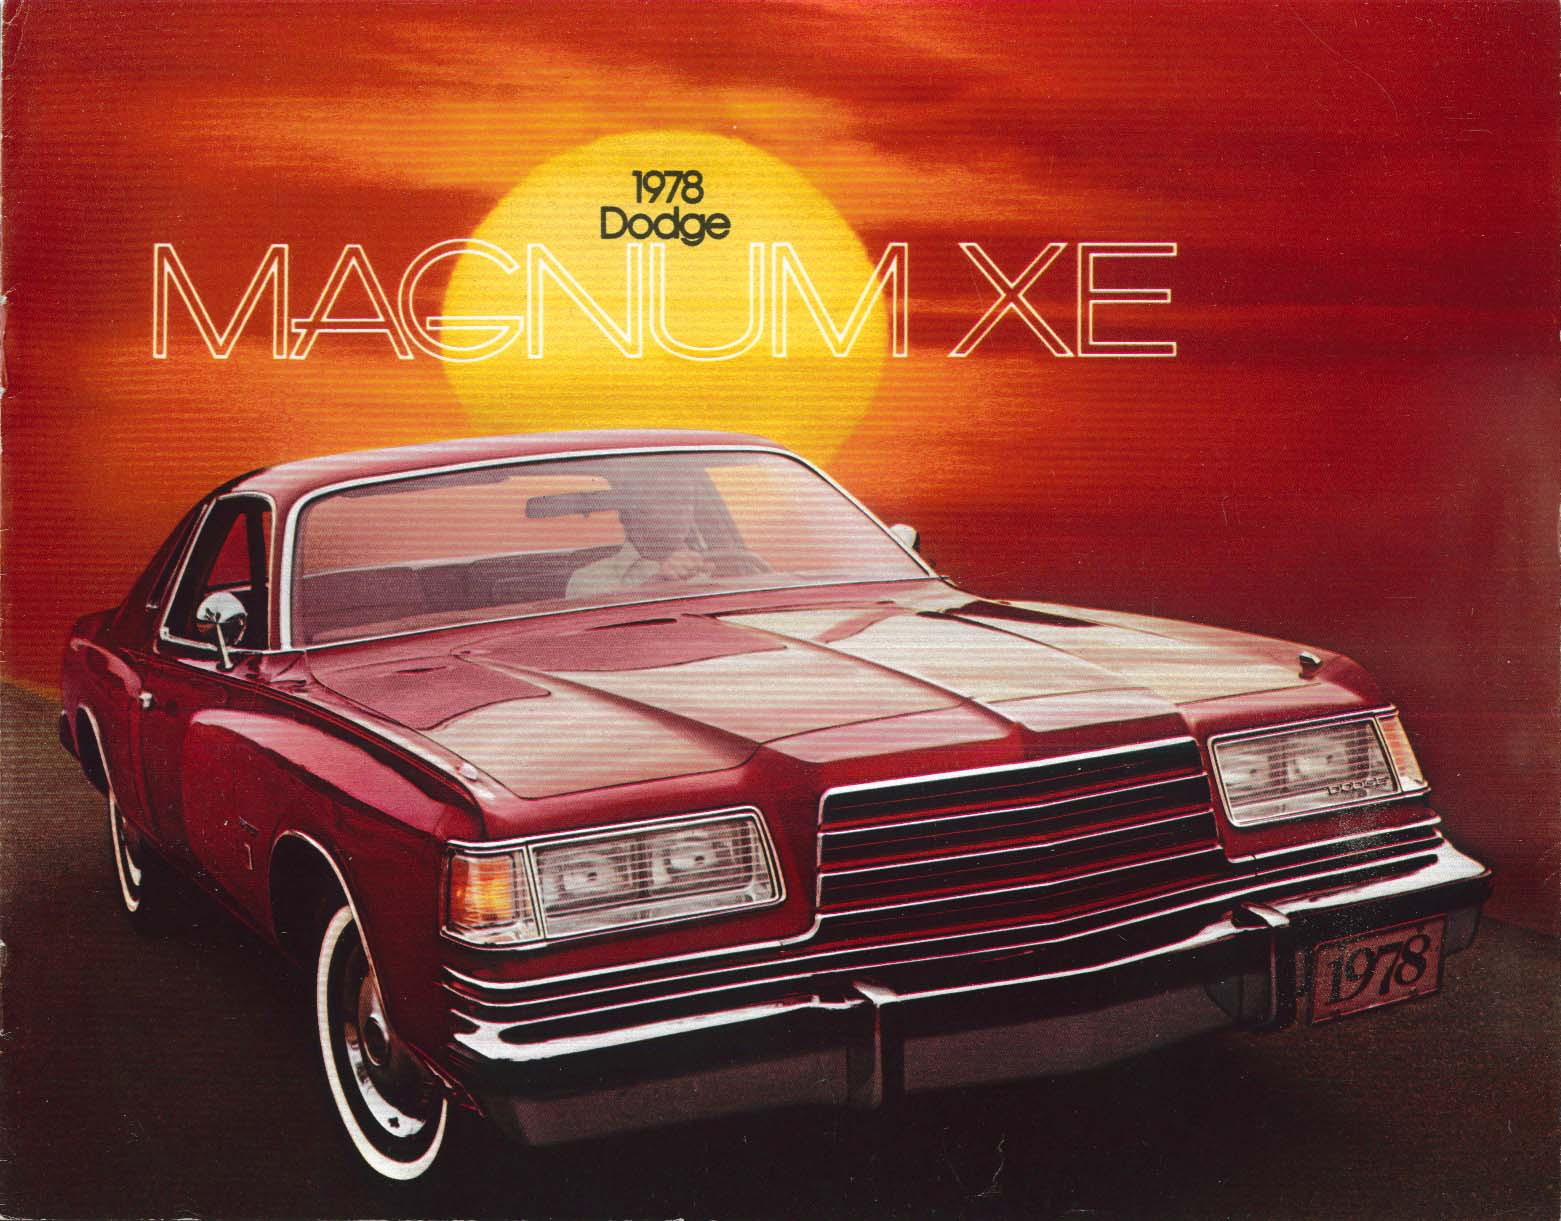 1978 Dodge Magnum XE sales brochure